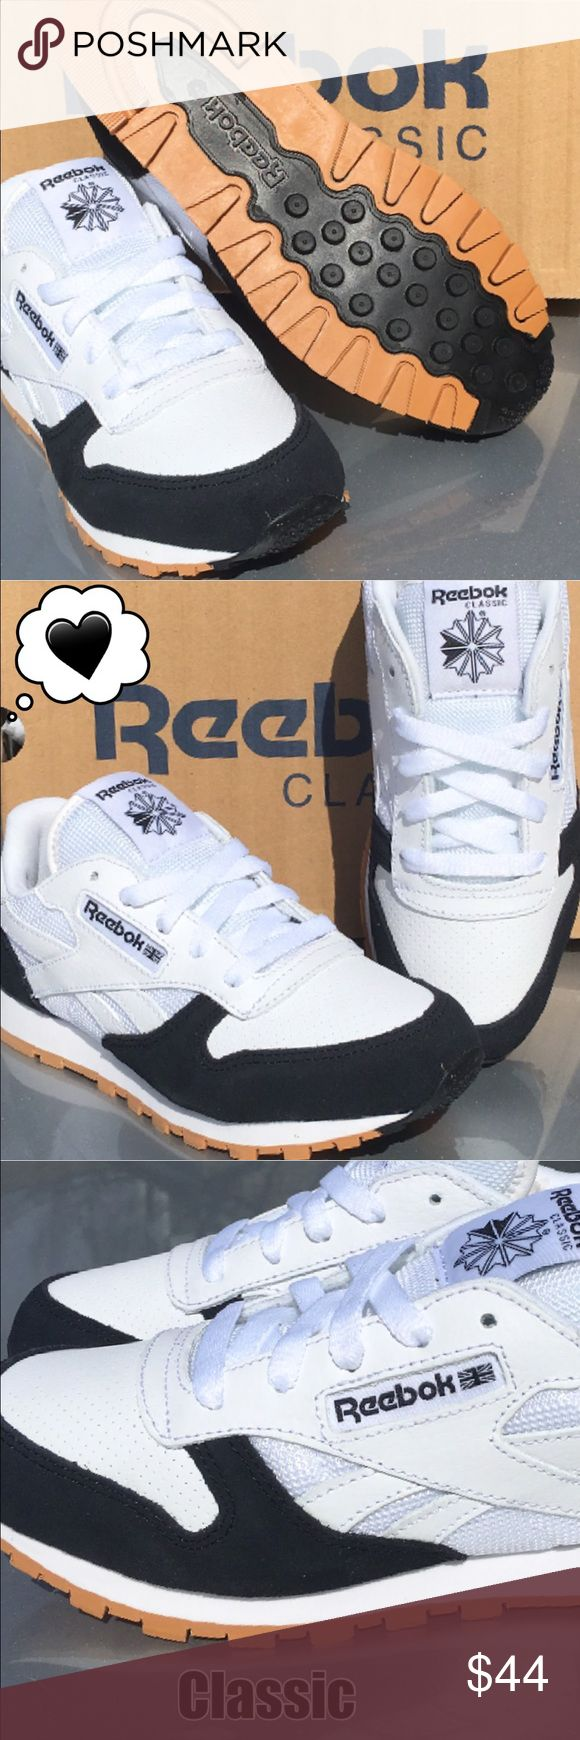 New Reebok Classic Sneaker for Boy or Girl❤️ Everyone Loves them! New Reebok Classic sneaker for boys or girls Always one of our best.. Reebok Shoes Sneakers